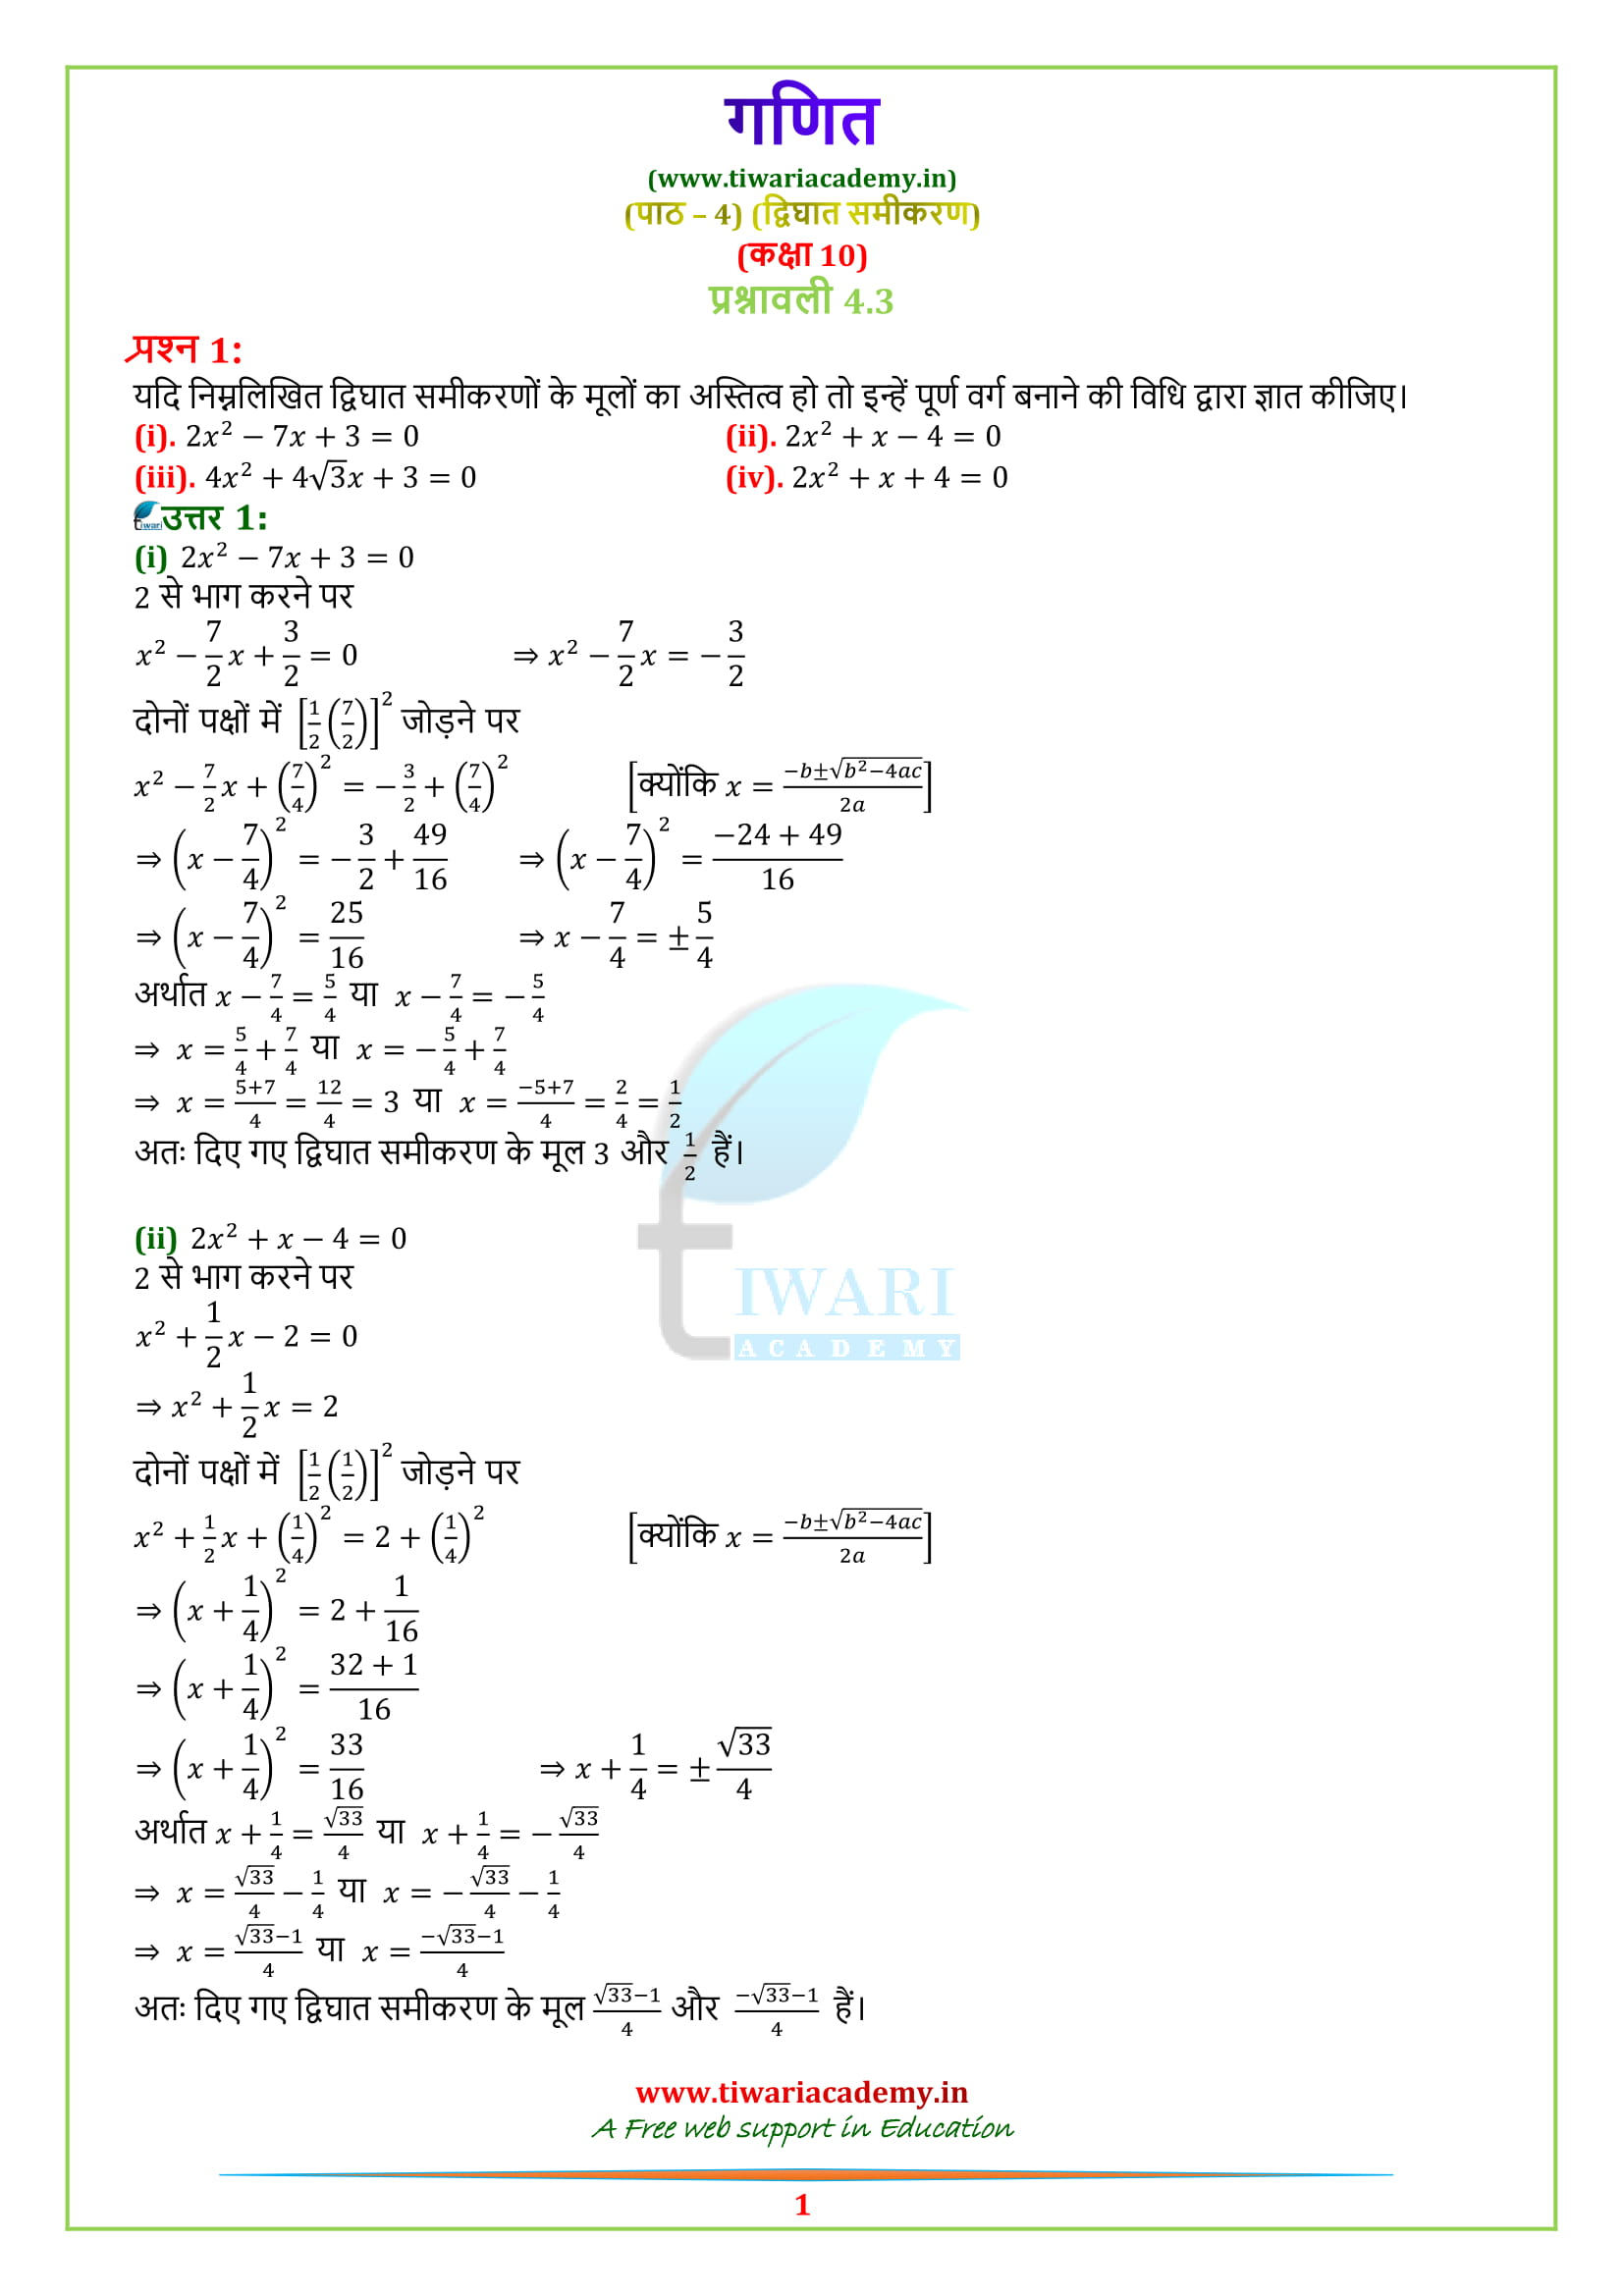 10 Maths exercise 4.3 question 1, 2, 3, 4, 5, 6, 7, 8, 9, 10, 11 in hindi